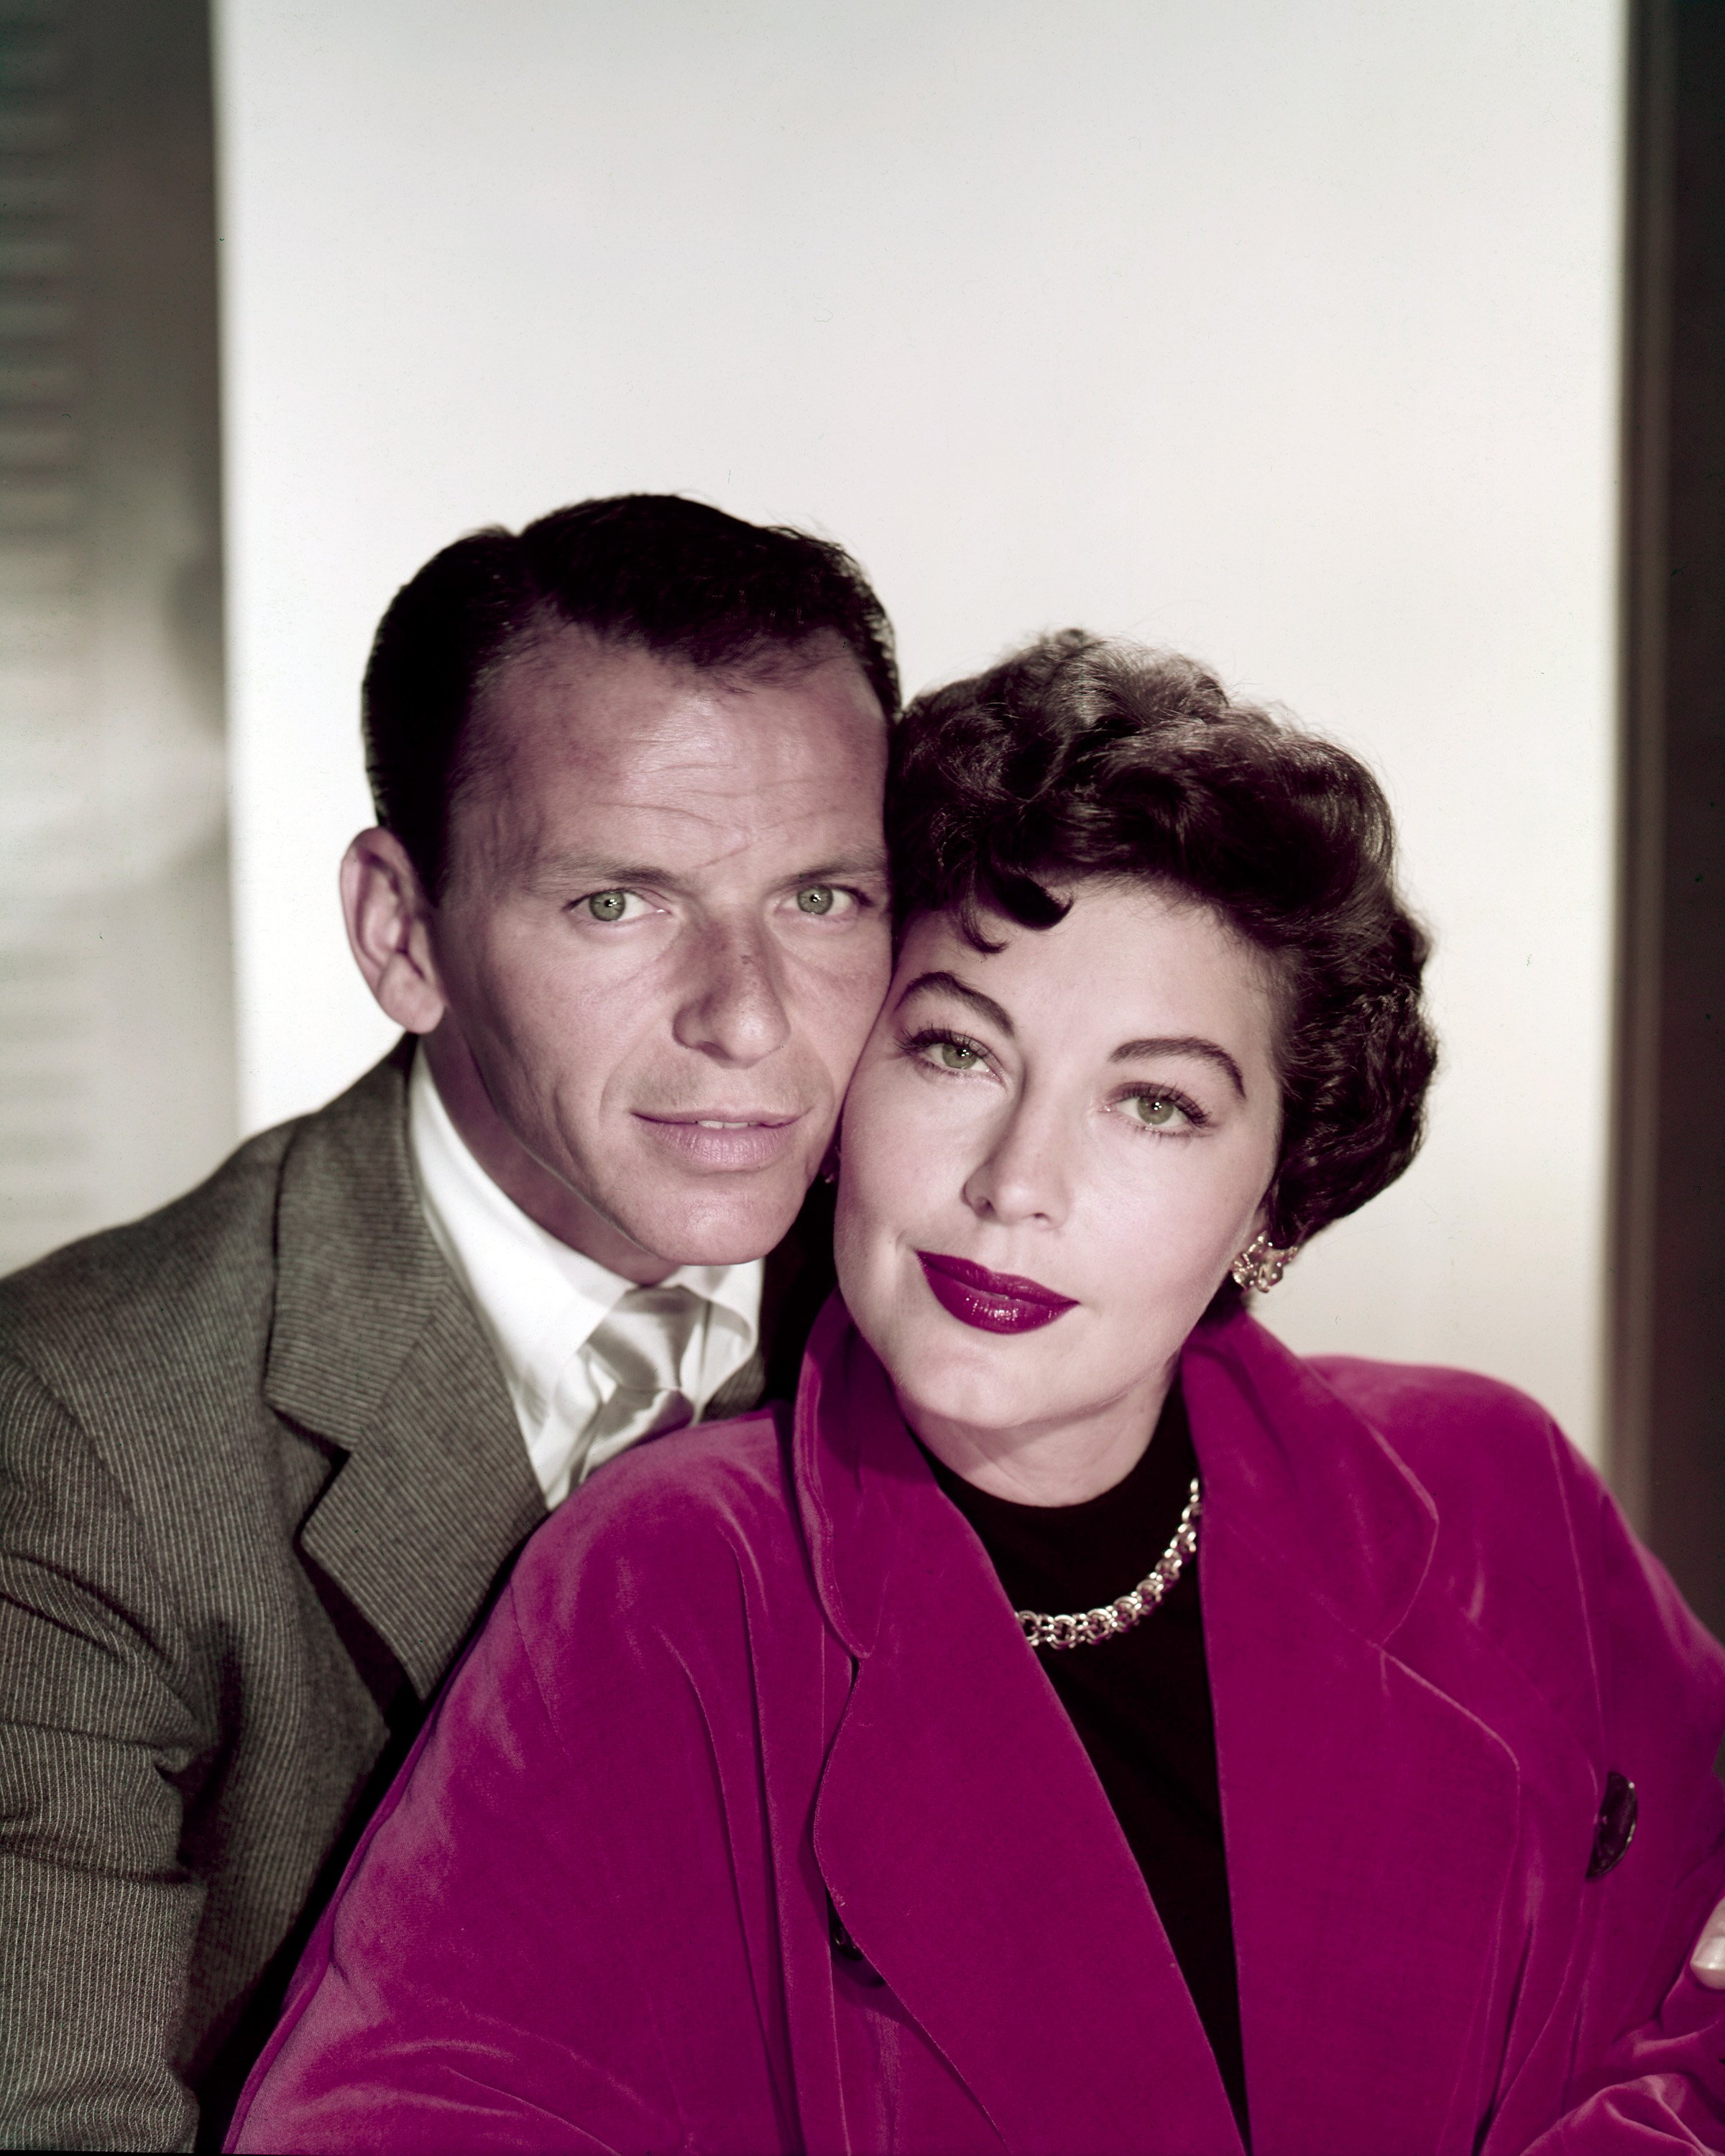 American actors and singers Frank Sinatra (1915 - 1998) and Ava Gardner (1922 - 1990), circa 1953 | Photo: Getty Images